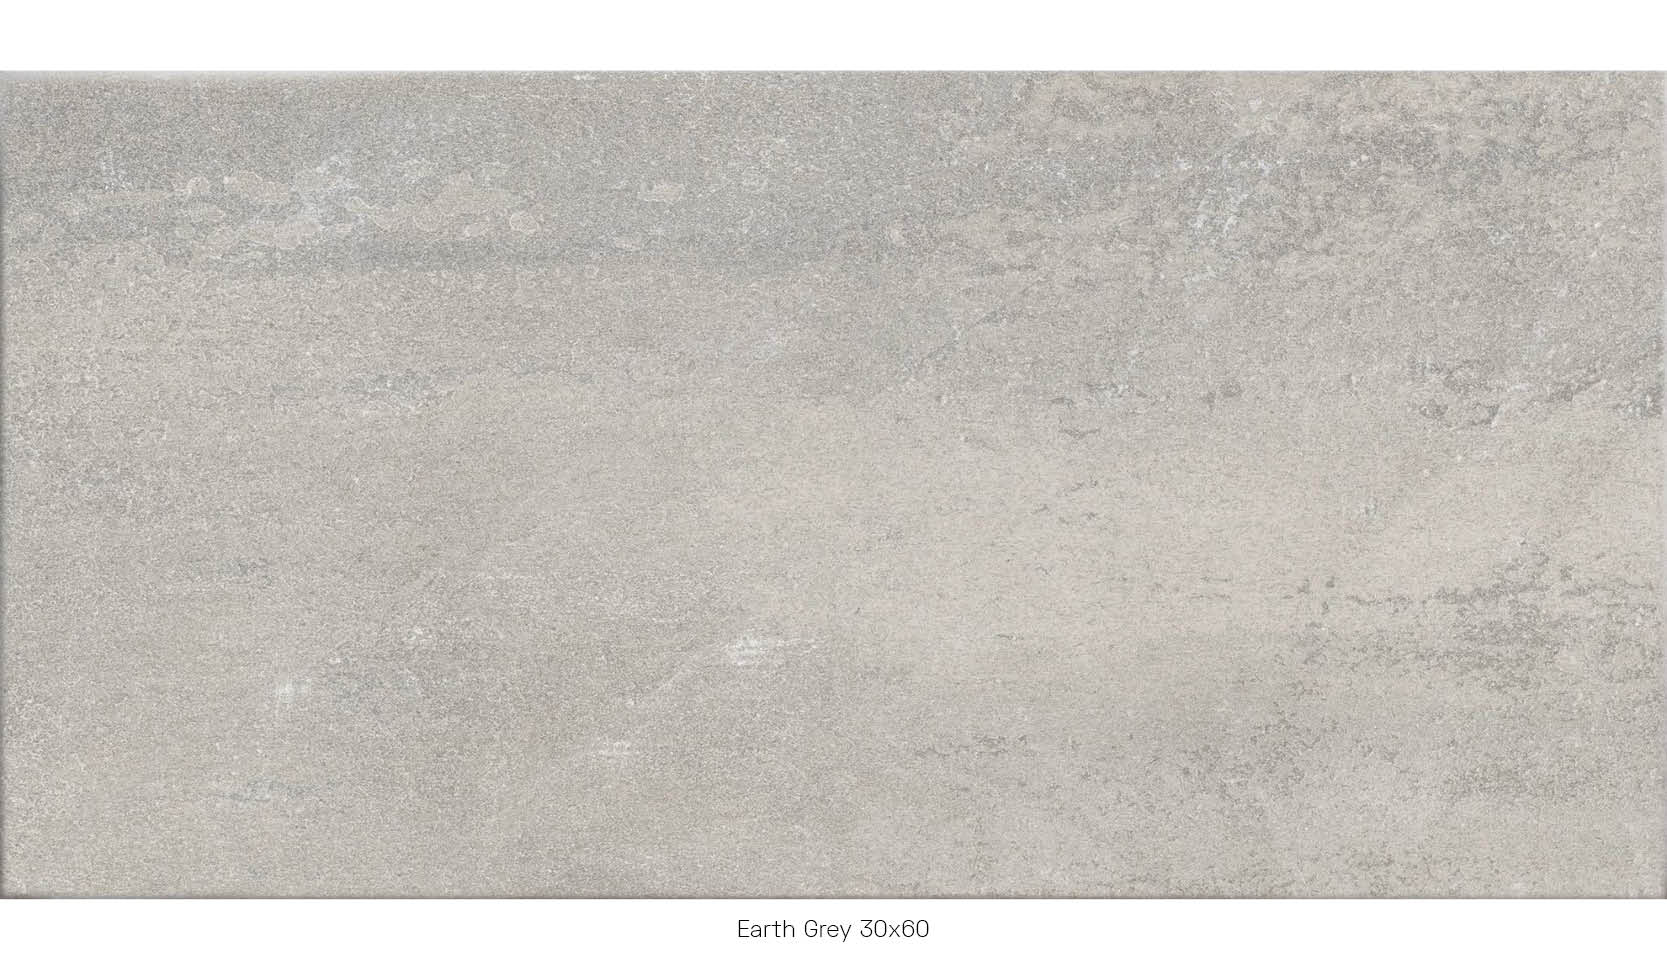 Earth Grey 30 x 60